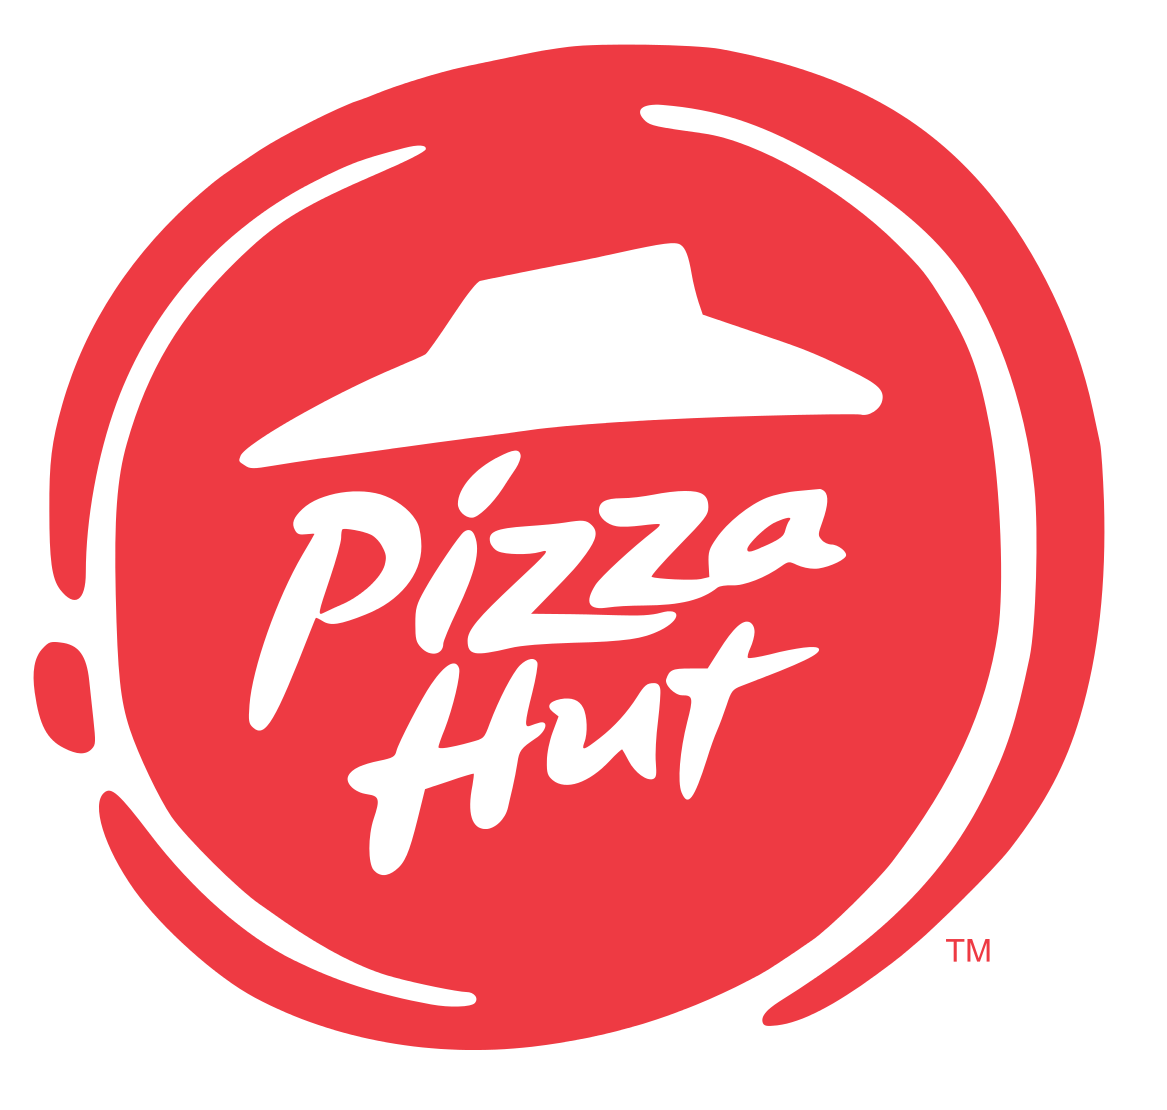 pizza hut logo png transparent background famous logos